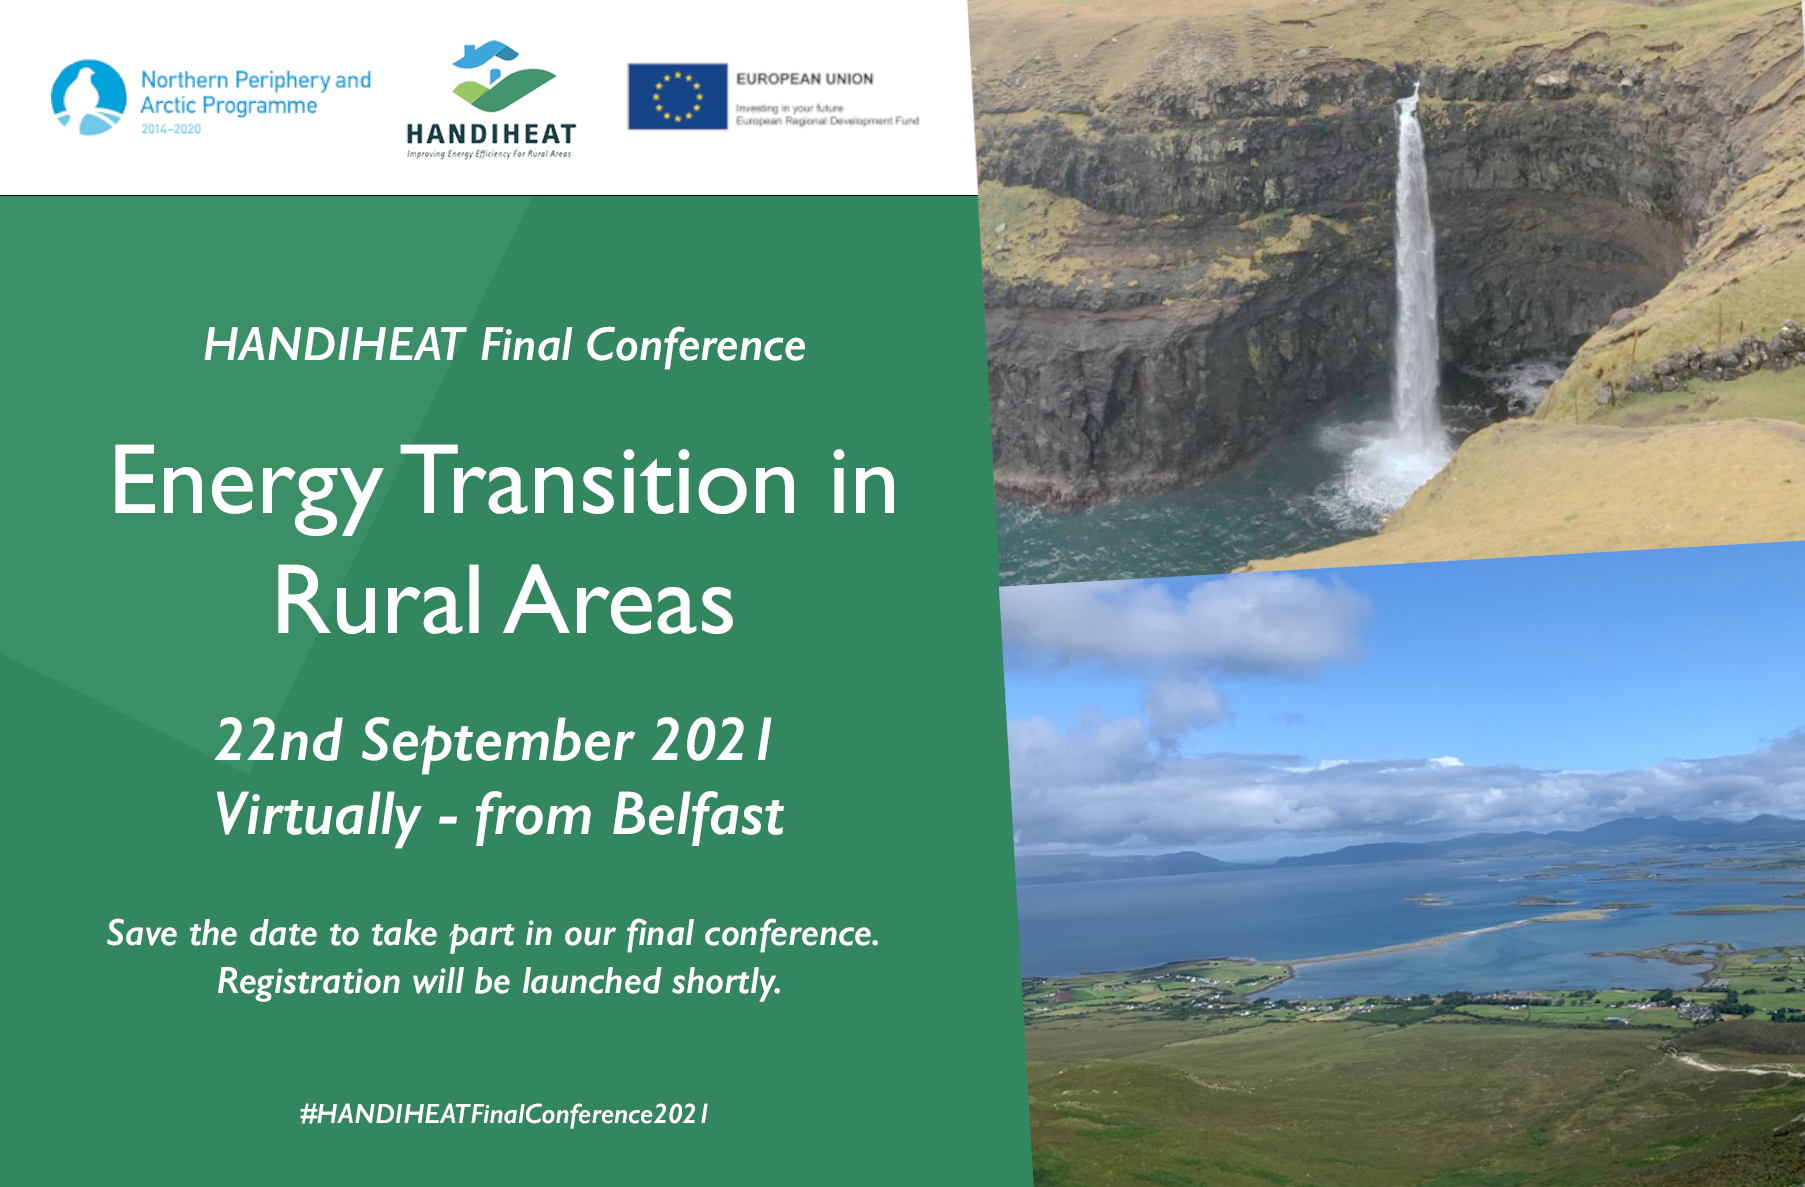 Energy Transition in Rural Areas 22.09.2021 - Virtual Conference from Belfast